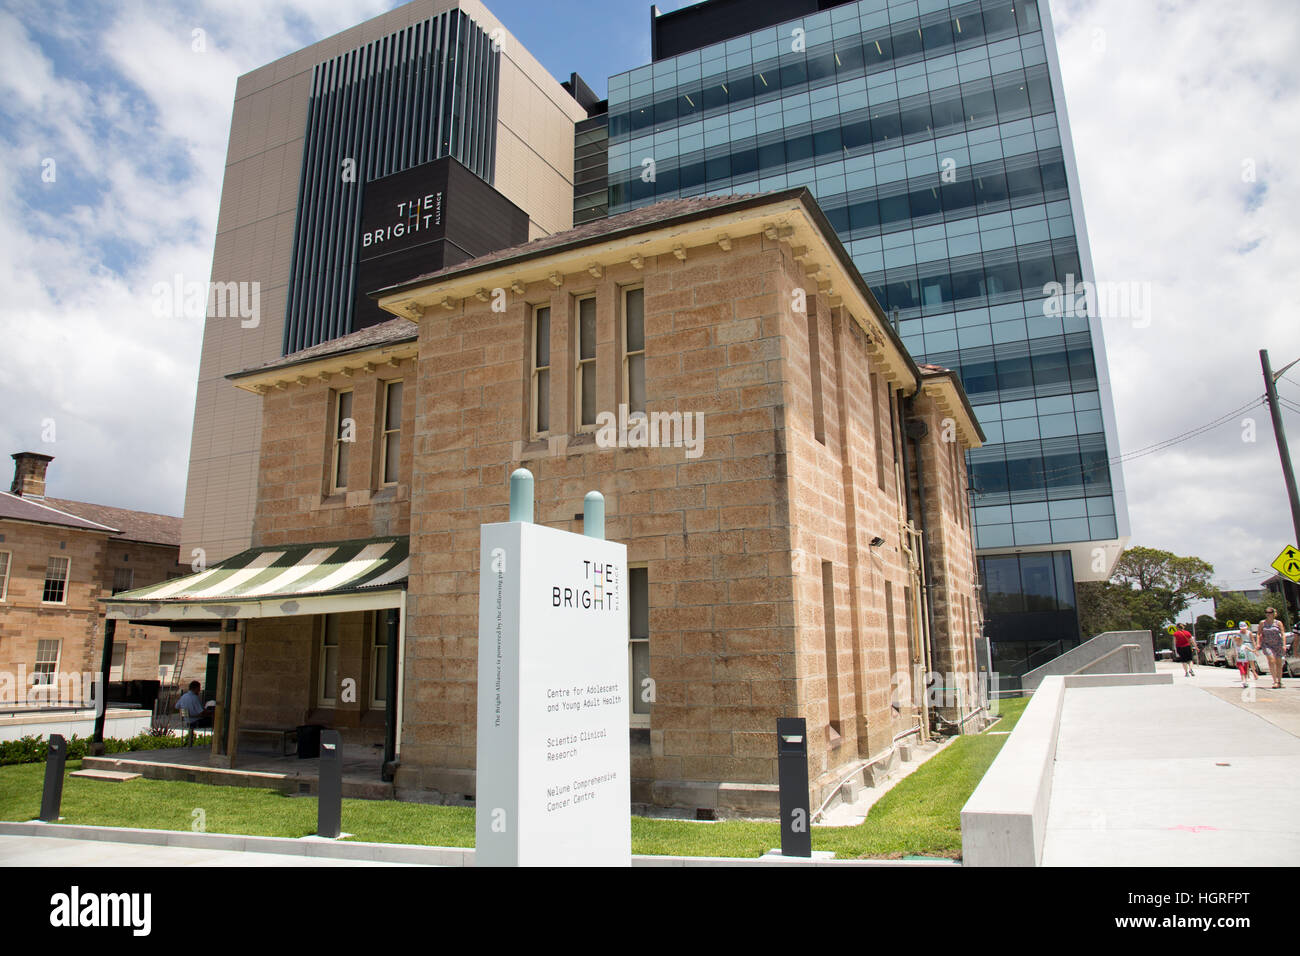 Bright alliance in Sydney, cancer research involving Prince of Wales hospital , Lowy cancer centre, UNSW, nelune - Stock Image